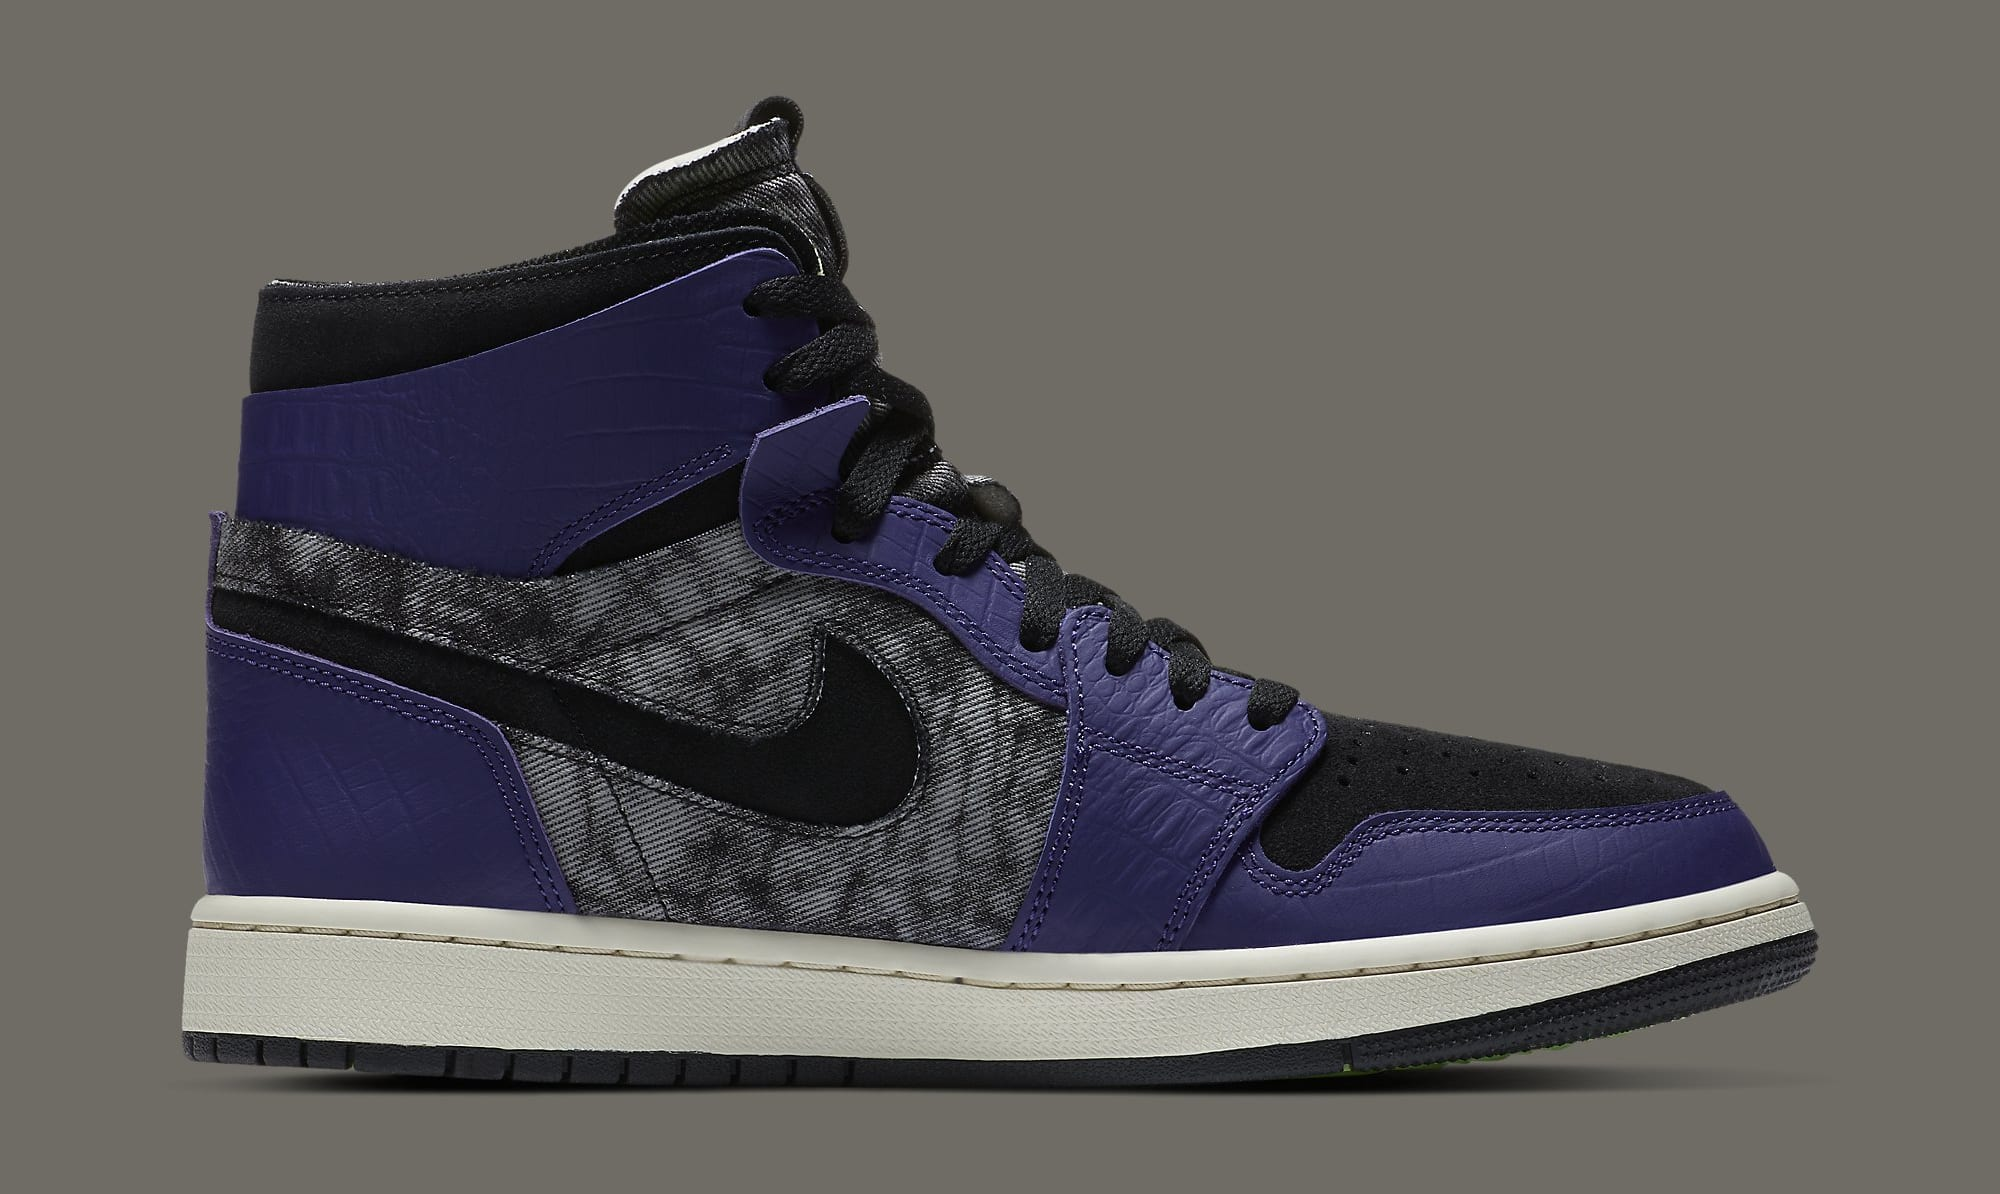 Air Jordan 1 Zoom CMFT 'Bayou Boys' DC2133-500 Medial